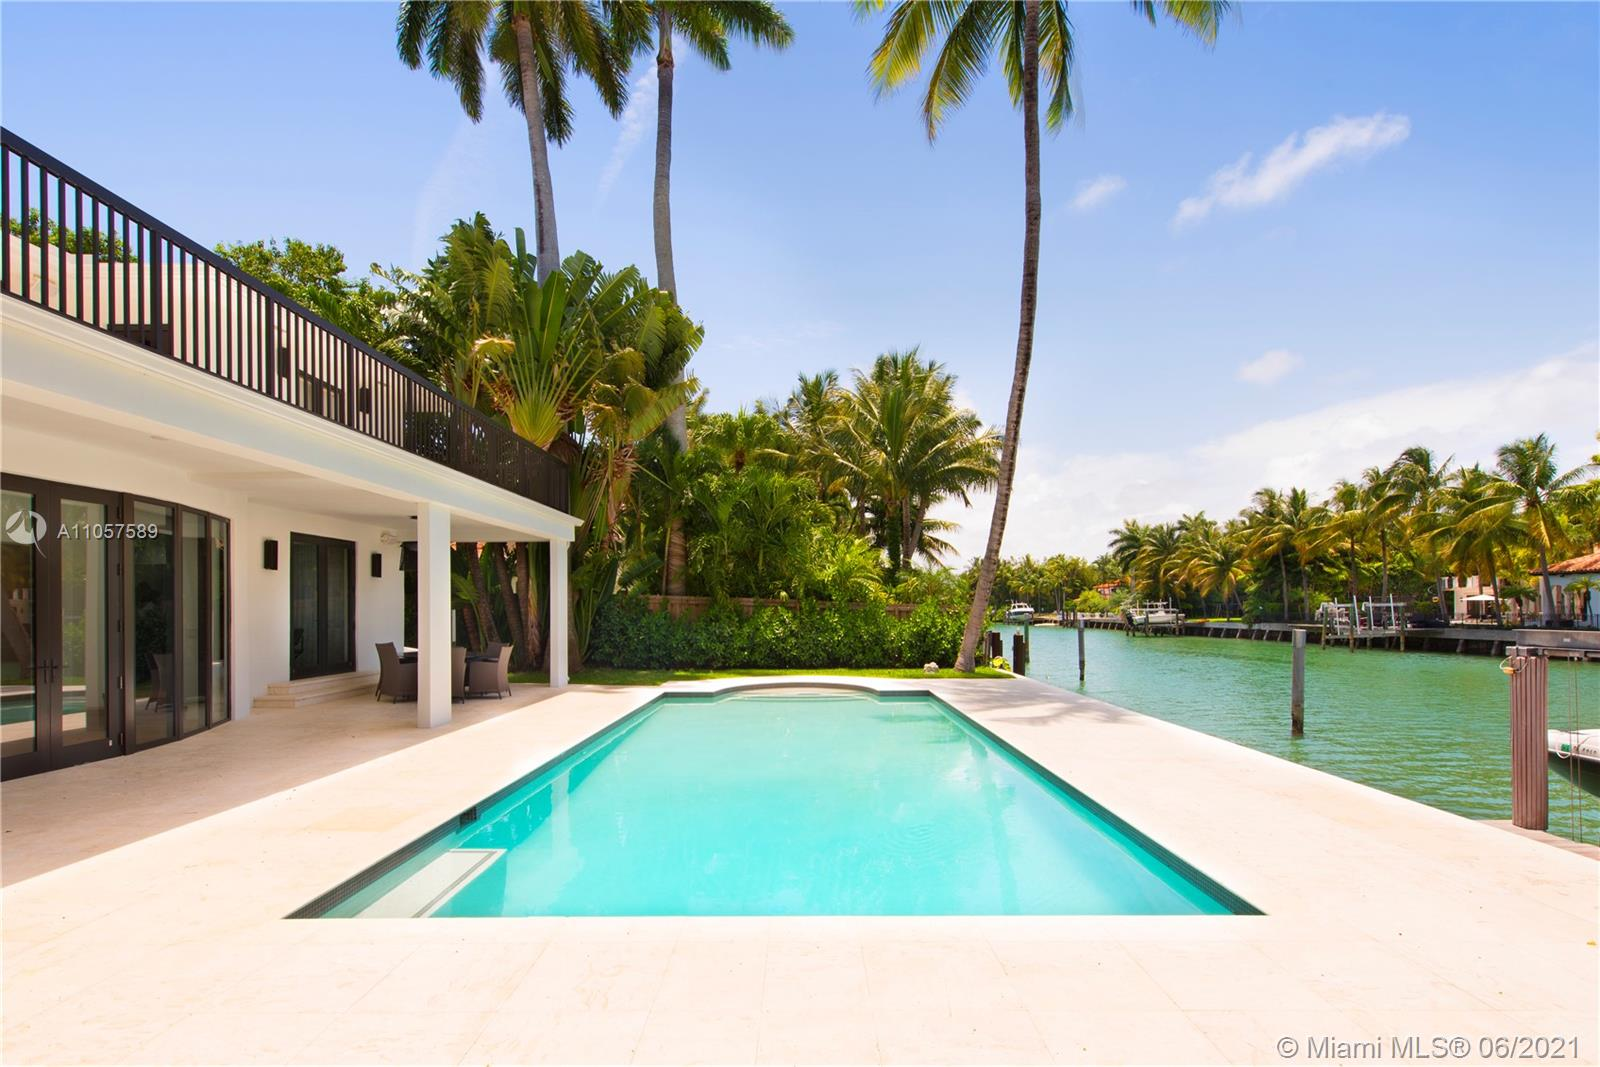 Located in the highly exclusive Sunset Island, this impeccably designed waterfront is your next turnkey destination. You will find yourself in an oasis filled w/beautiful scenery around the corner of the dynamic Sunset Harbour lifestyle. Every detail of this home was reconstructed to a perfect balance between Modern & Deco. Main floor features a spacious living room w/vaulted ceilings that leads to the pool & boat dock. State of the art media room for those comfortable movie nights & 2BR w/large bathroom also downstairs. Master bedroom on the 2nd floor opens to the terrace where you can enjoy sun all day & another large ensuite bedroom. Wood flooring throughout, custom designed kitchen w/Miele appliances, custom closets by Innerspace & electronic blinds, make this Smart Home easy to enjoy.